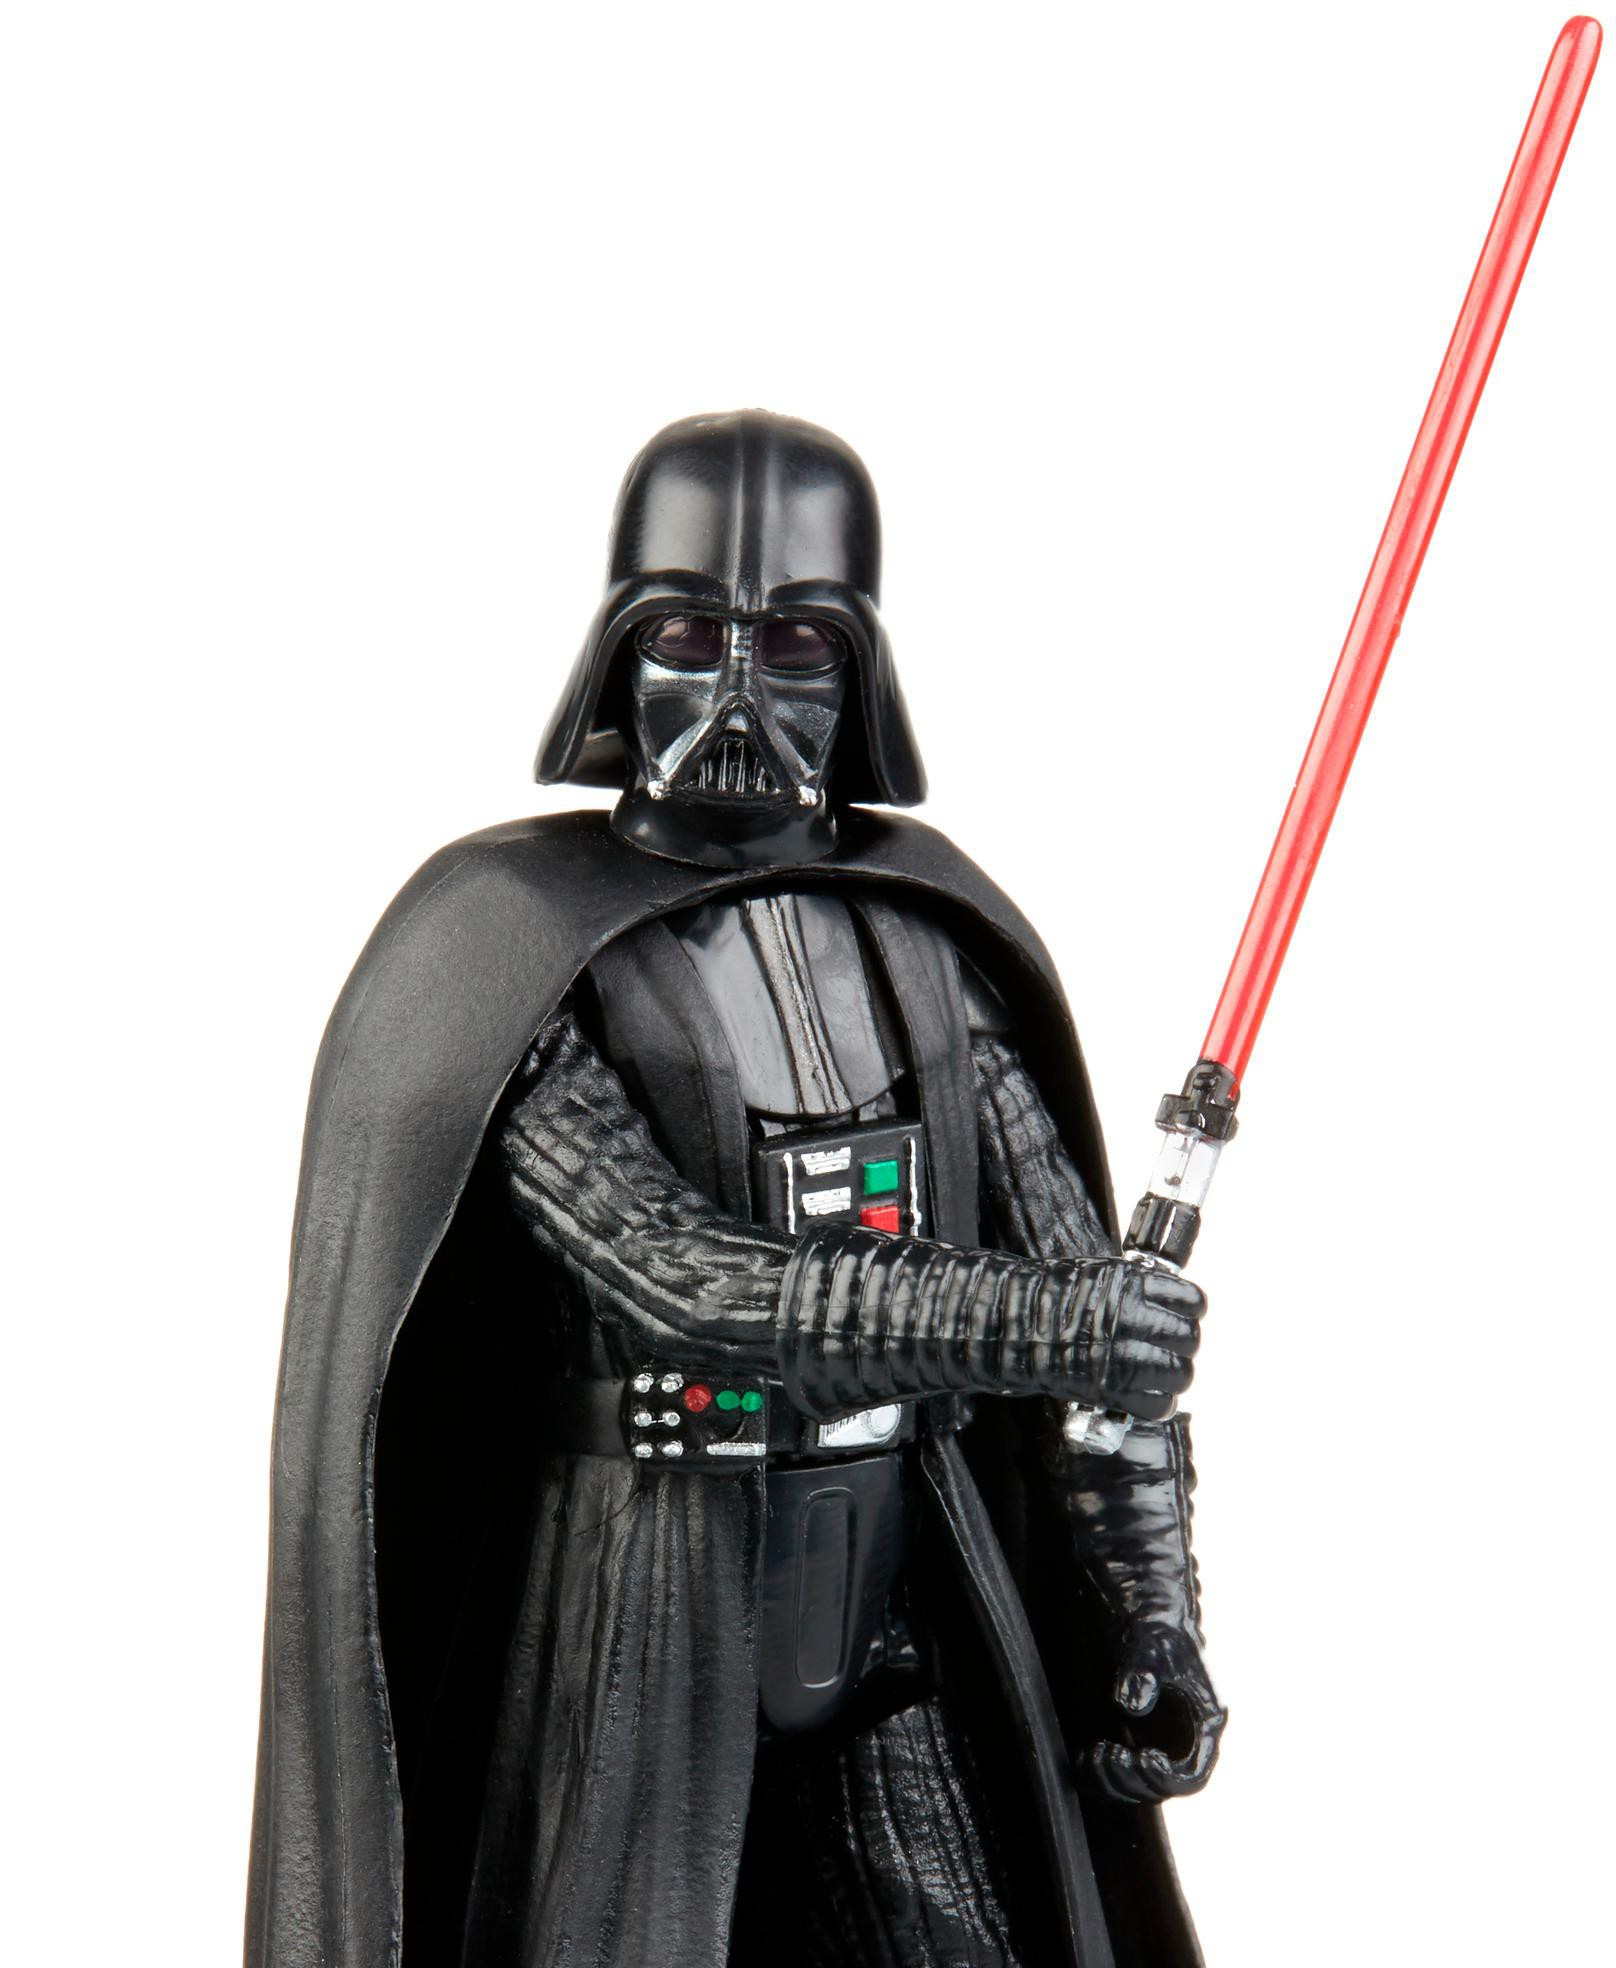 COMIC GALAXY OF ADVENTURES ACTION FIGURE NEW SITH LORD STAR WARS DARTH VADER